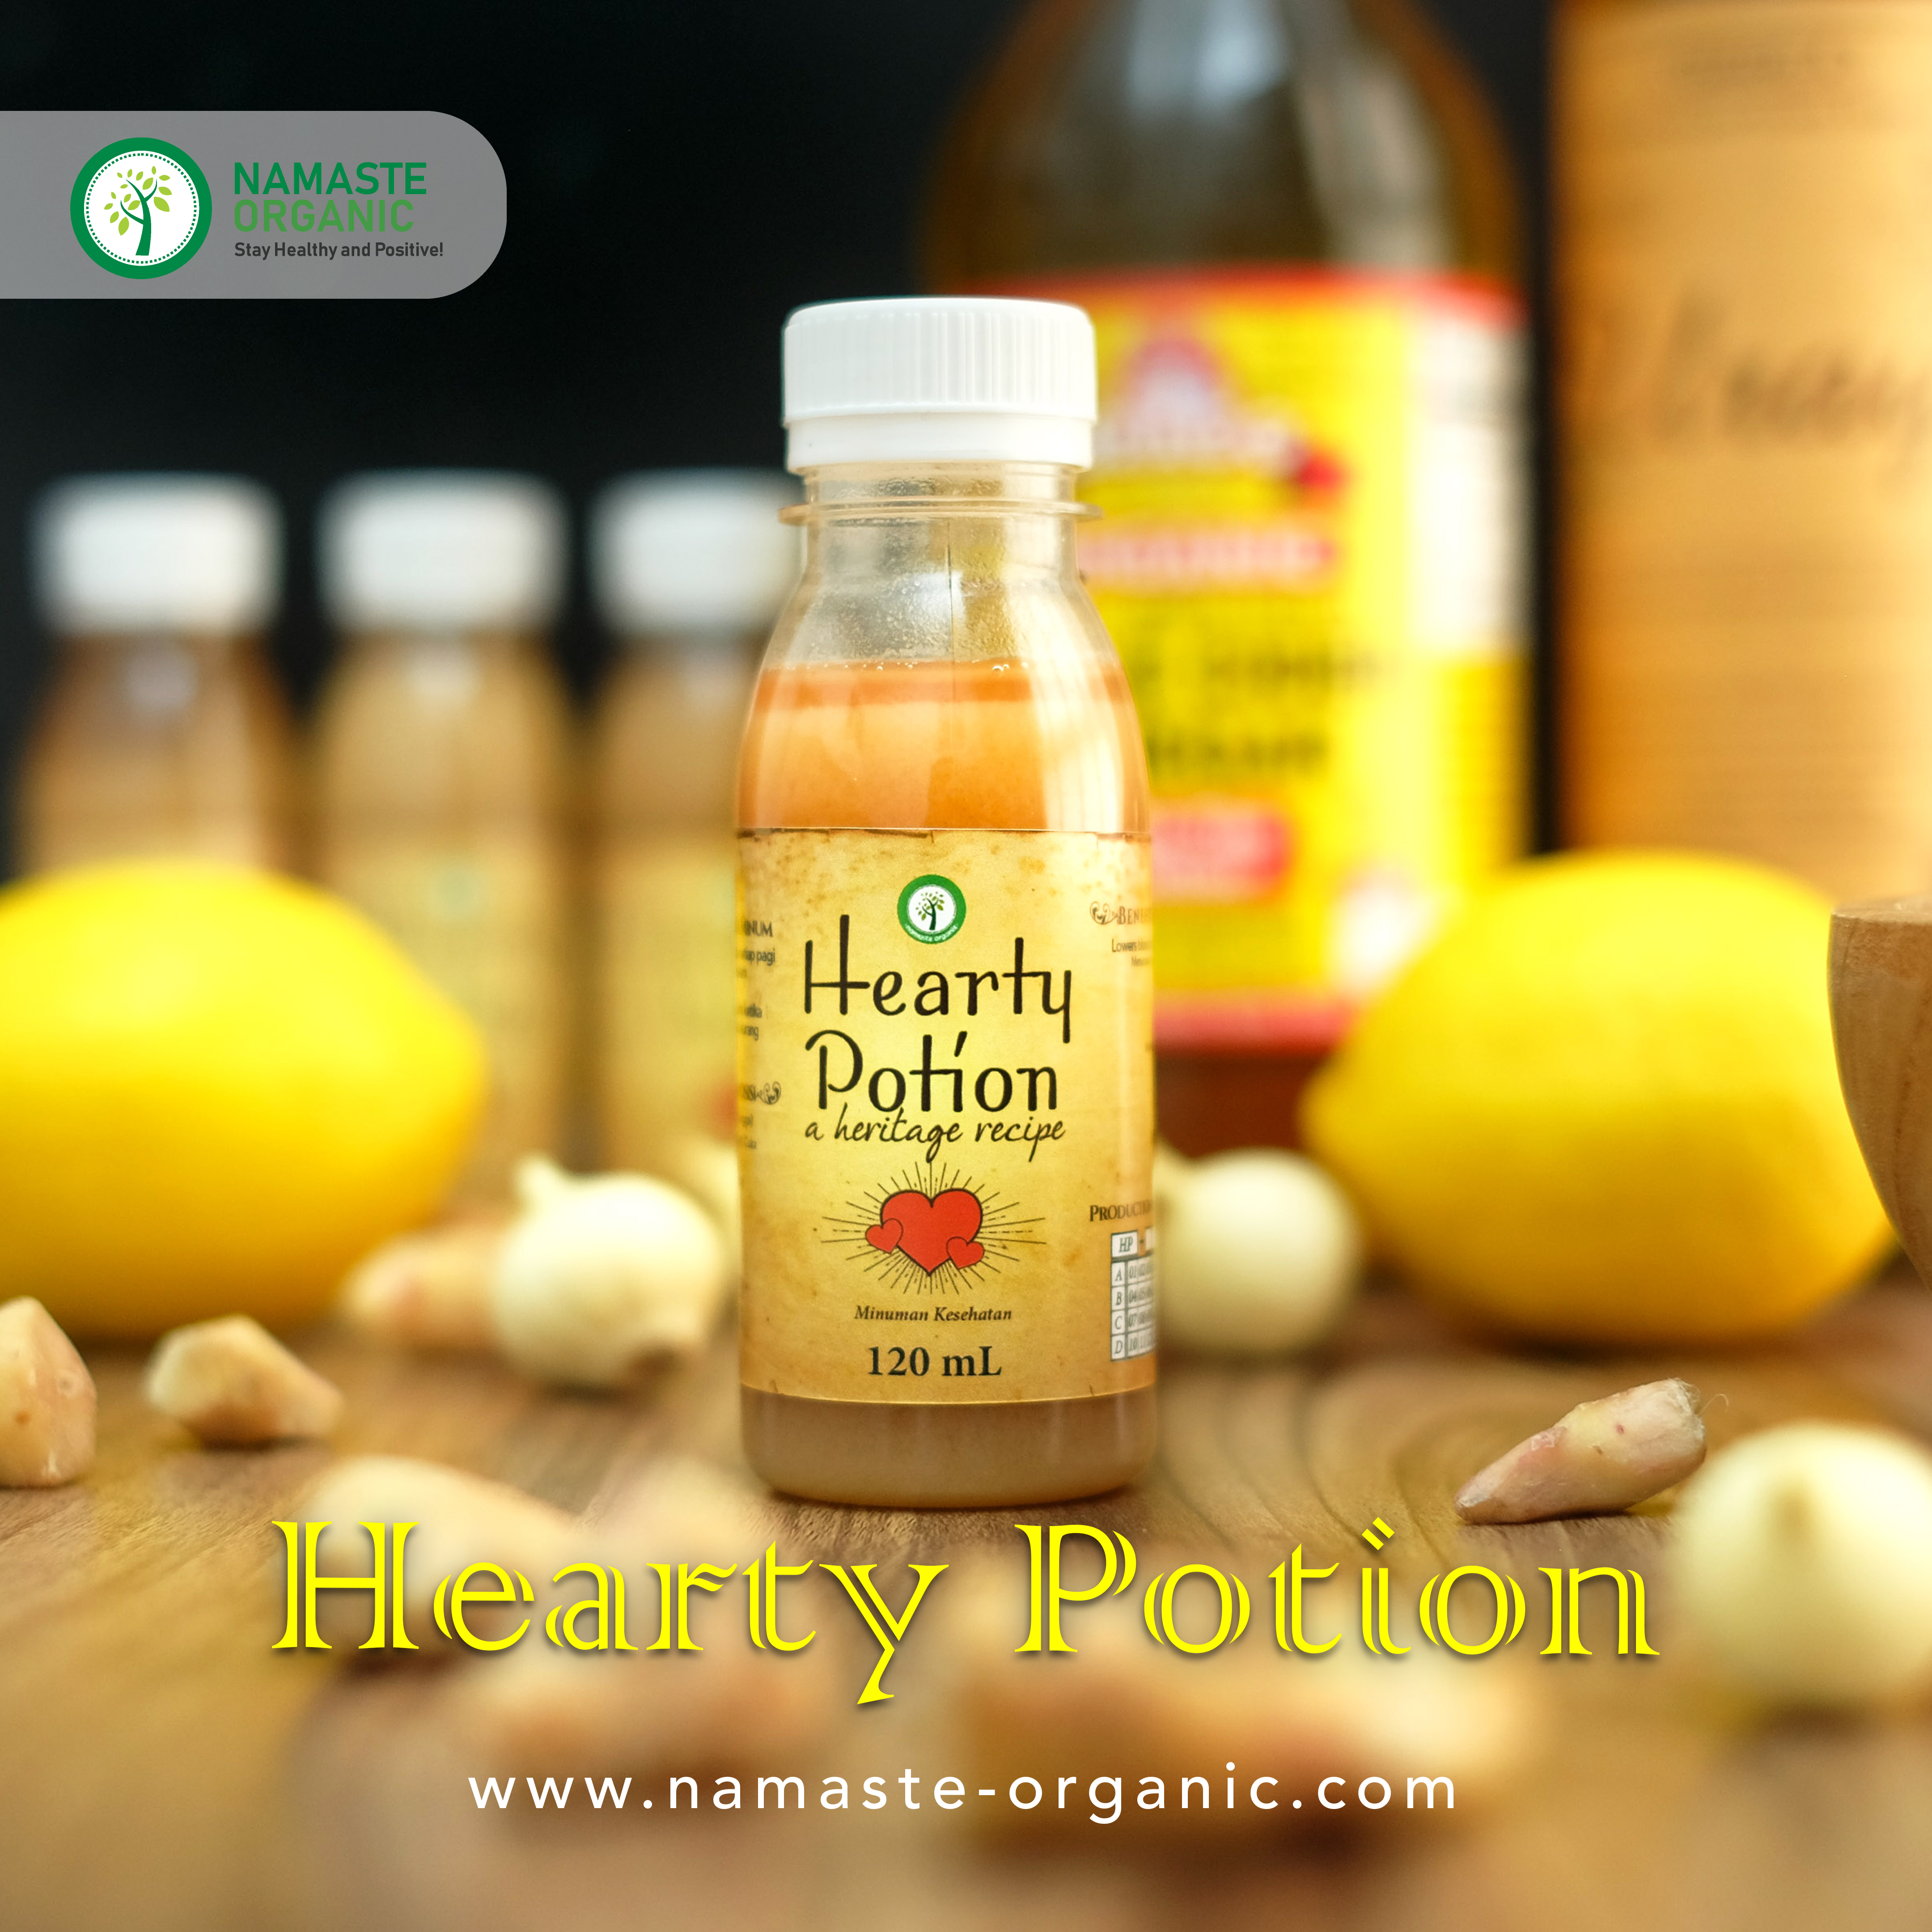 HEARTY POTION image